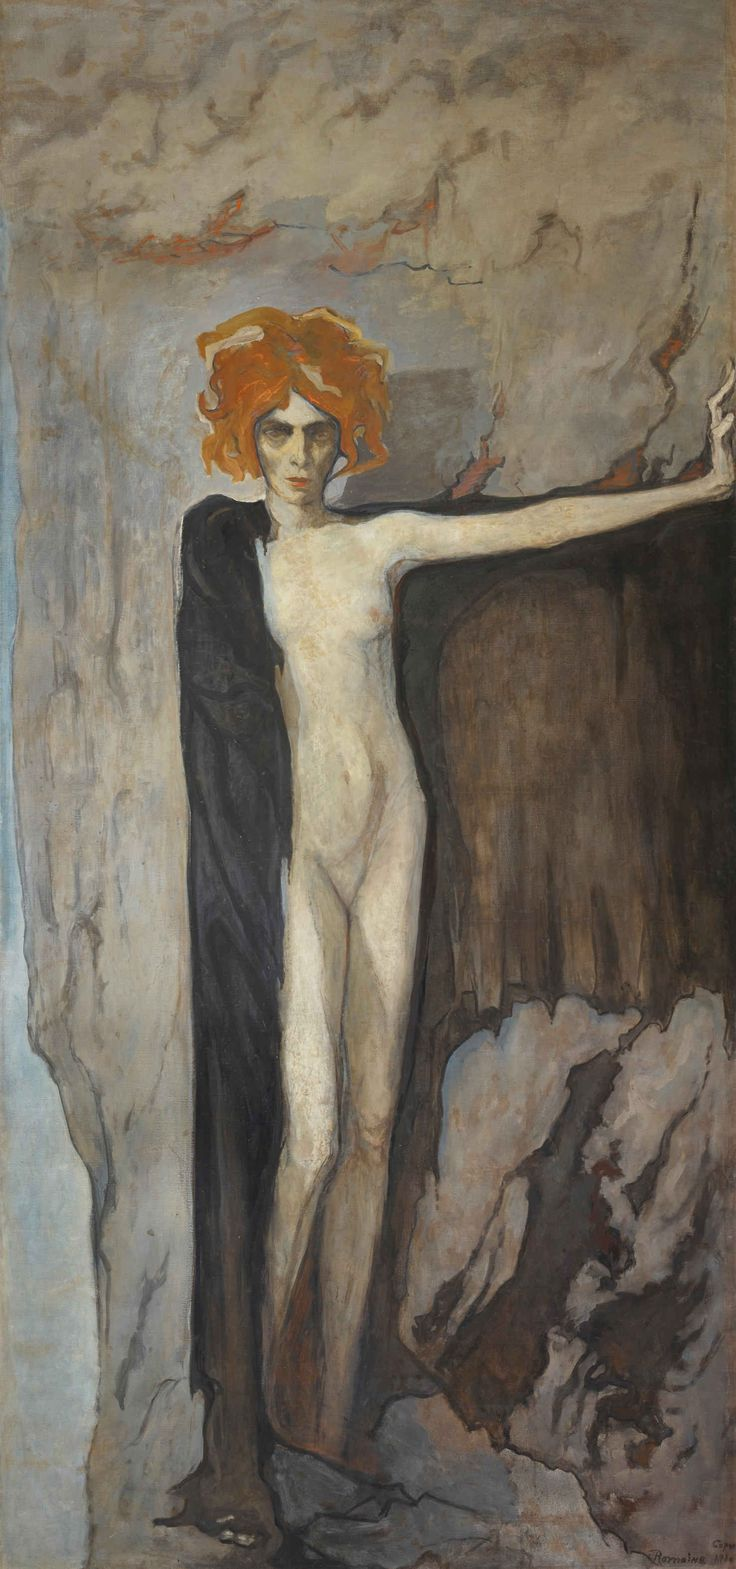 Portrait of Marchesa Luisa Casati, 1920 by Romaine Brooks, (American expatriate artist, 1874-1970)